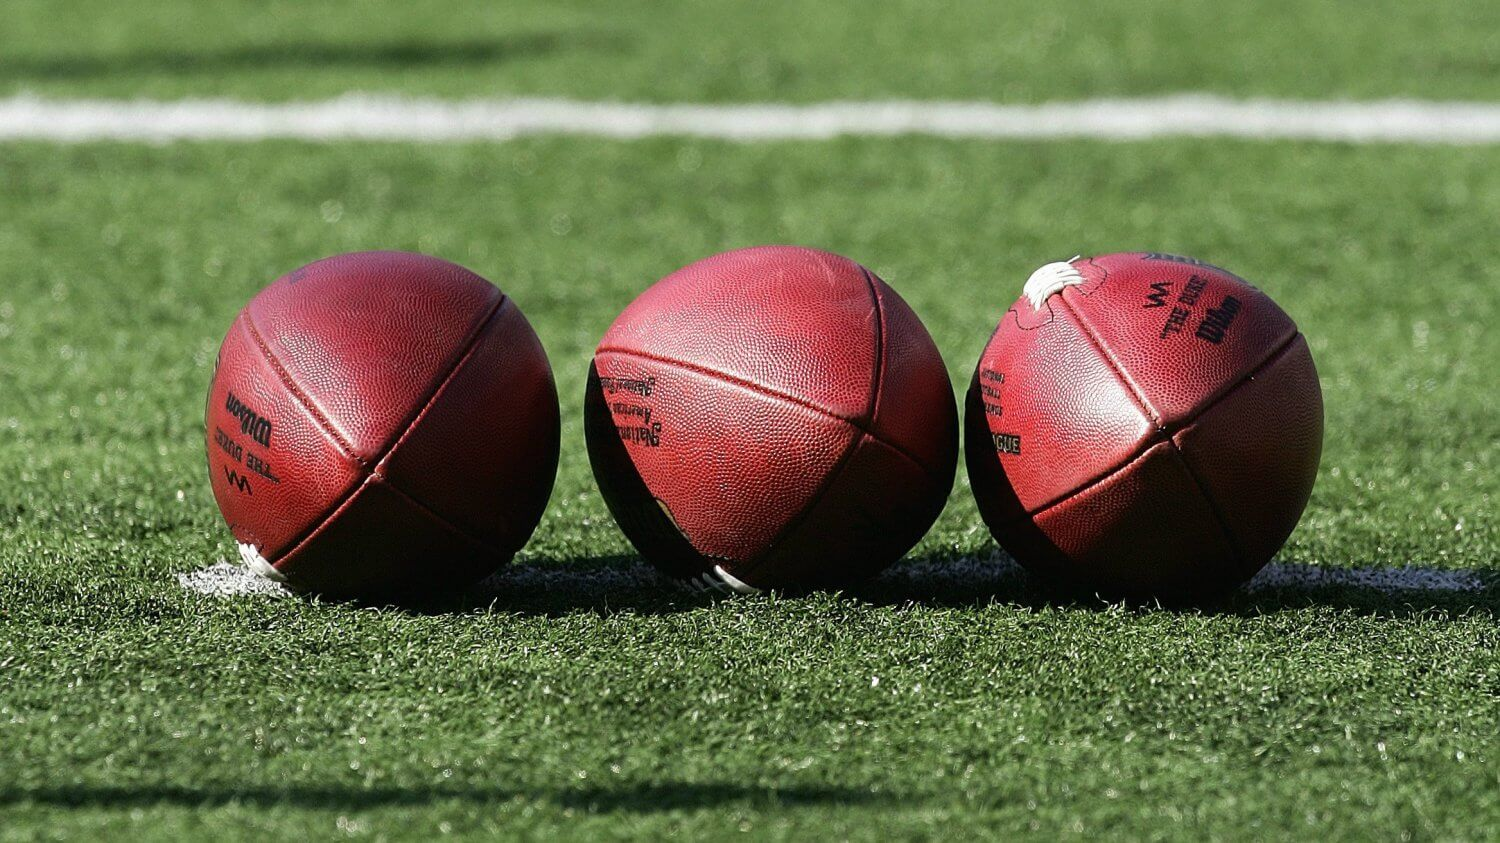 Former Florida State Football Player Files Concussion Lawsuit